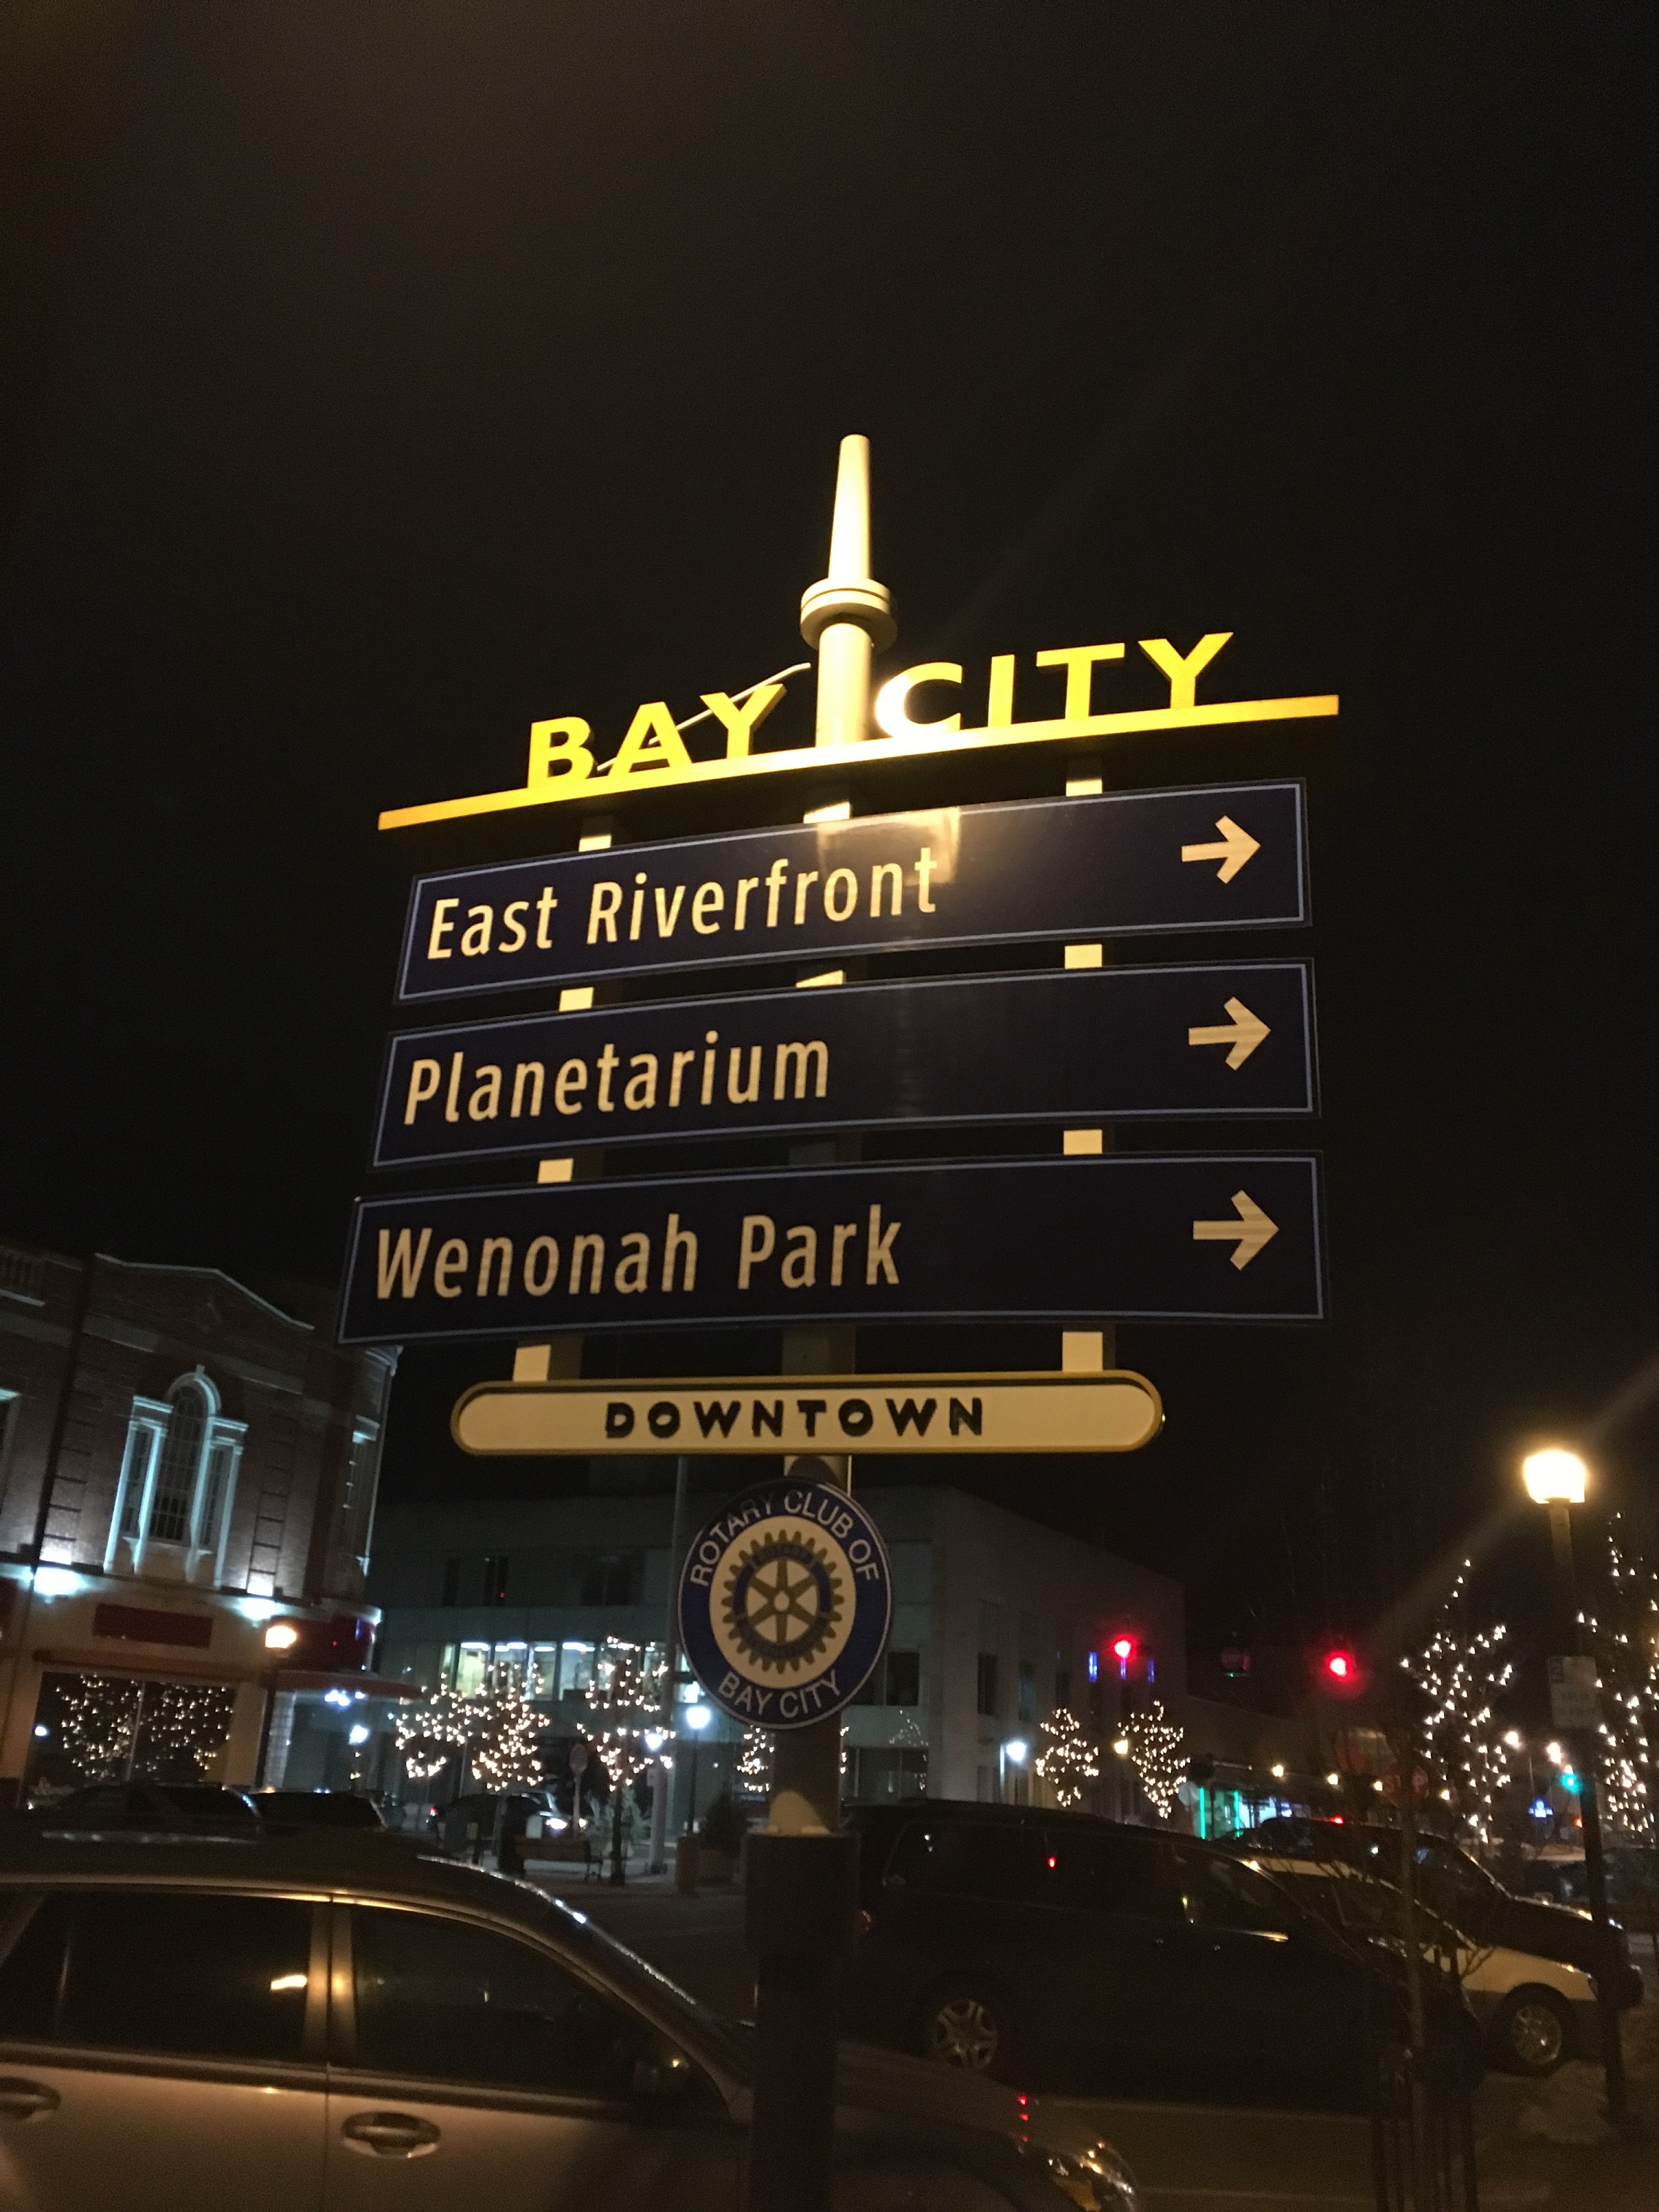 Directions in downtown Bay City. Photo by Nicole Serra